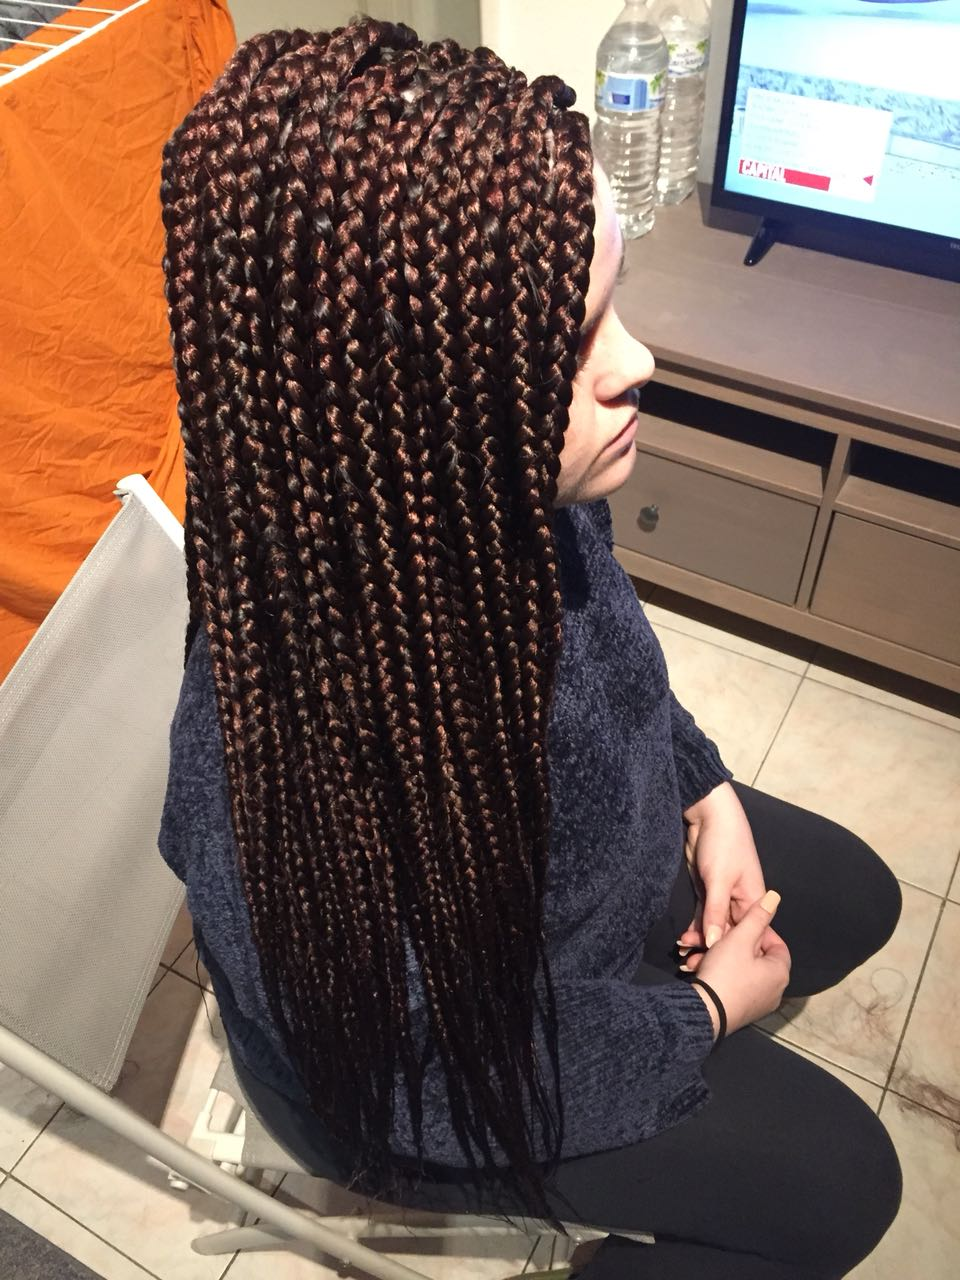 salon de coiffure afro tresse tresses box braids crochet braids vanilles tissages paris 75 77 78 91 92 93 94 95 REJLFCMW